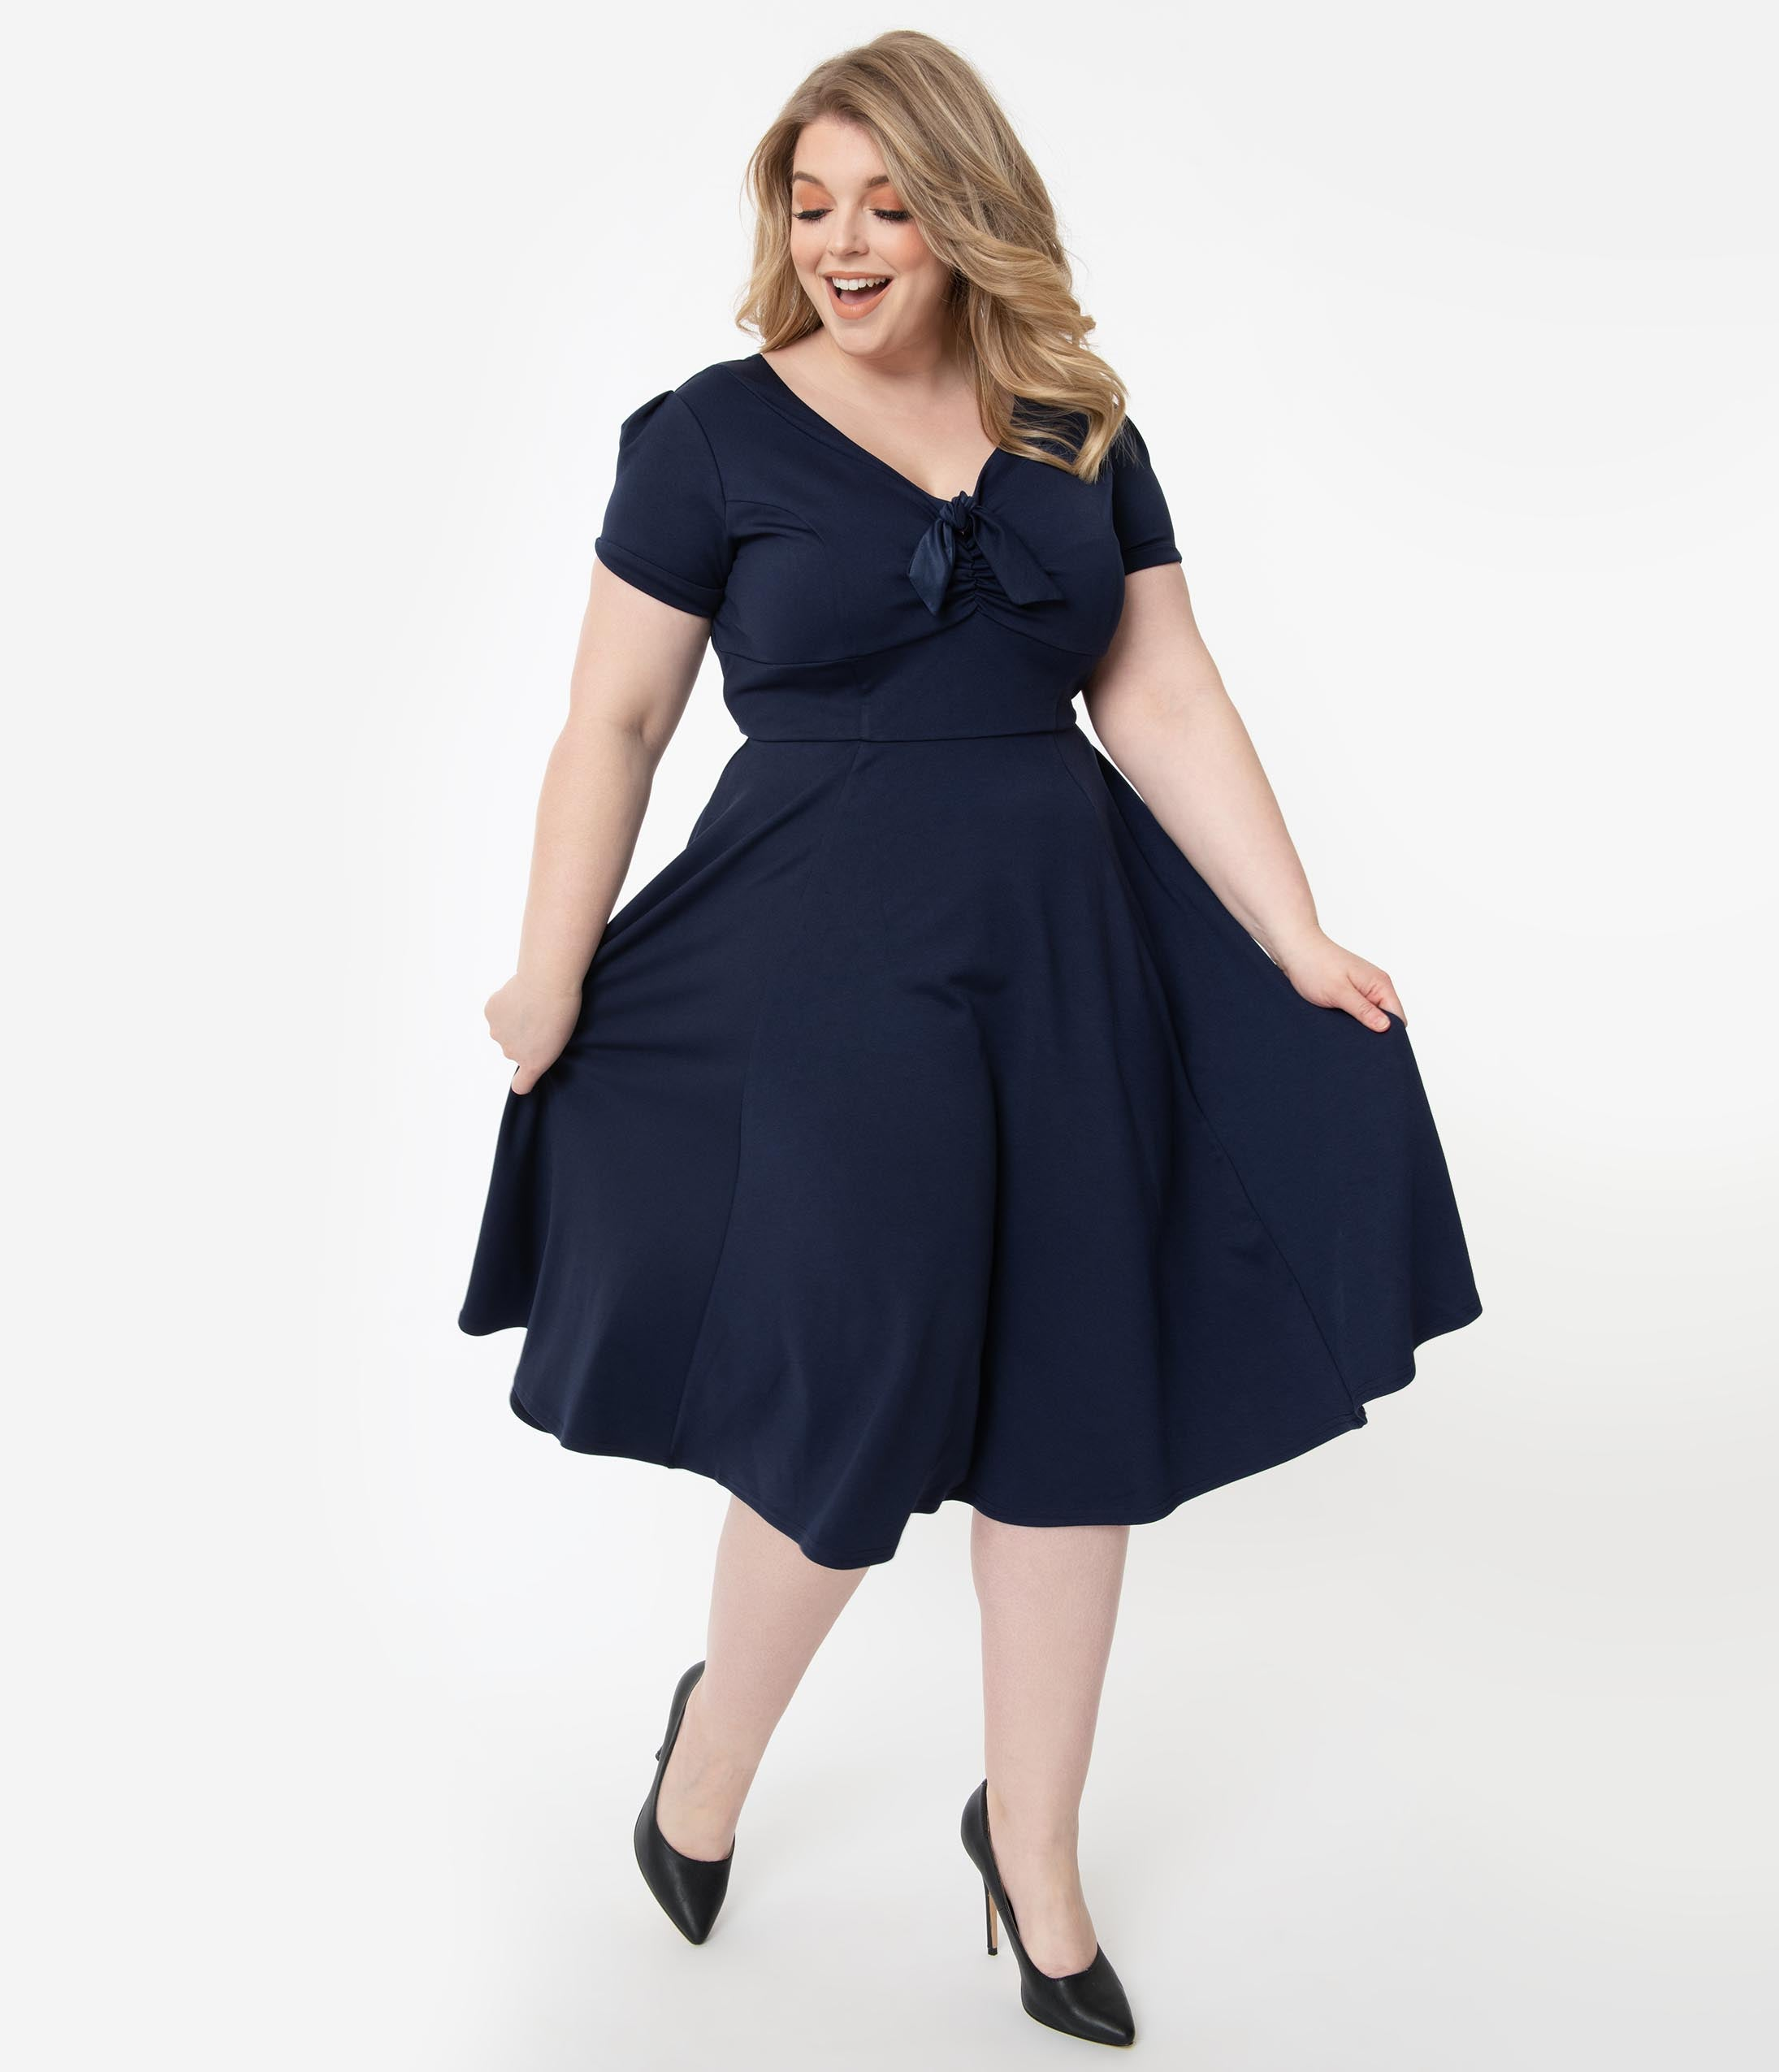 Swing Dance Clothing You Can Dance In 1940S Style Navy Blue Natalie Swing Dress $78.00 AT vintagedancer.com